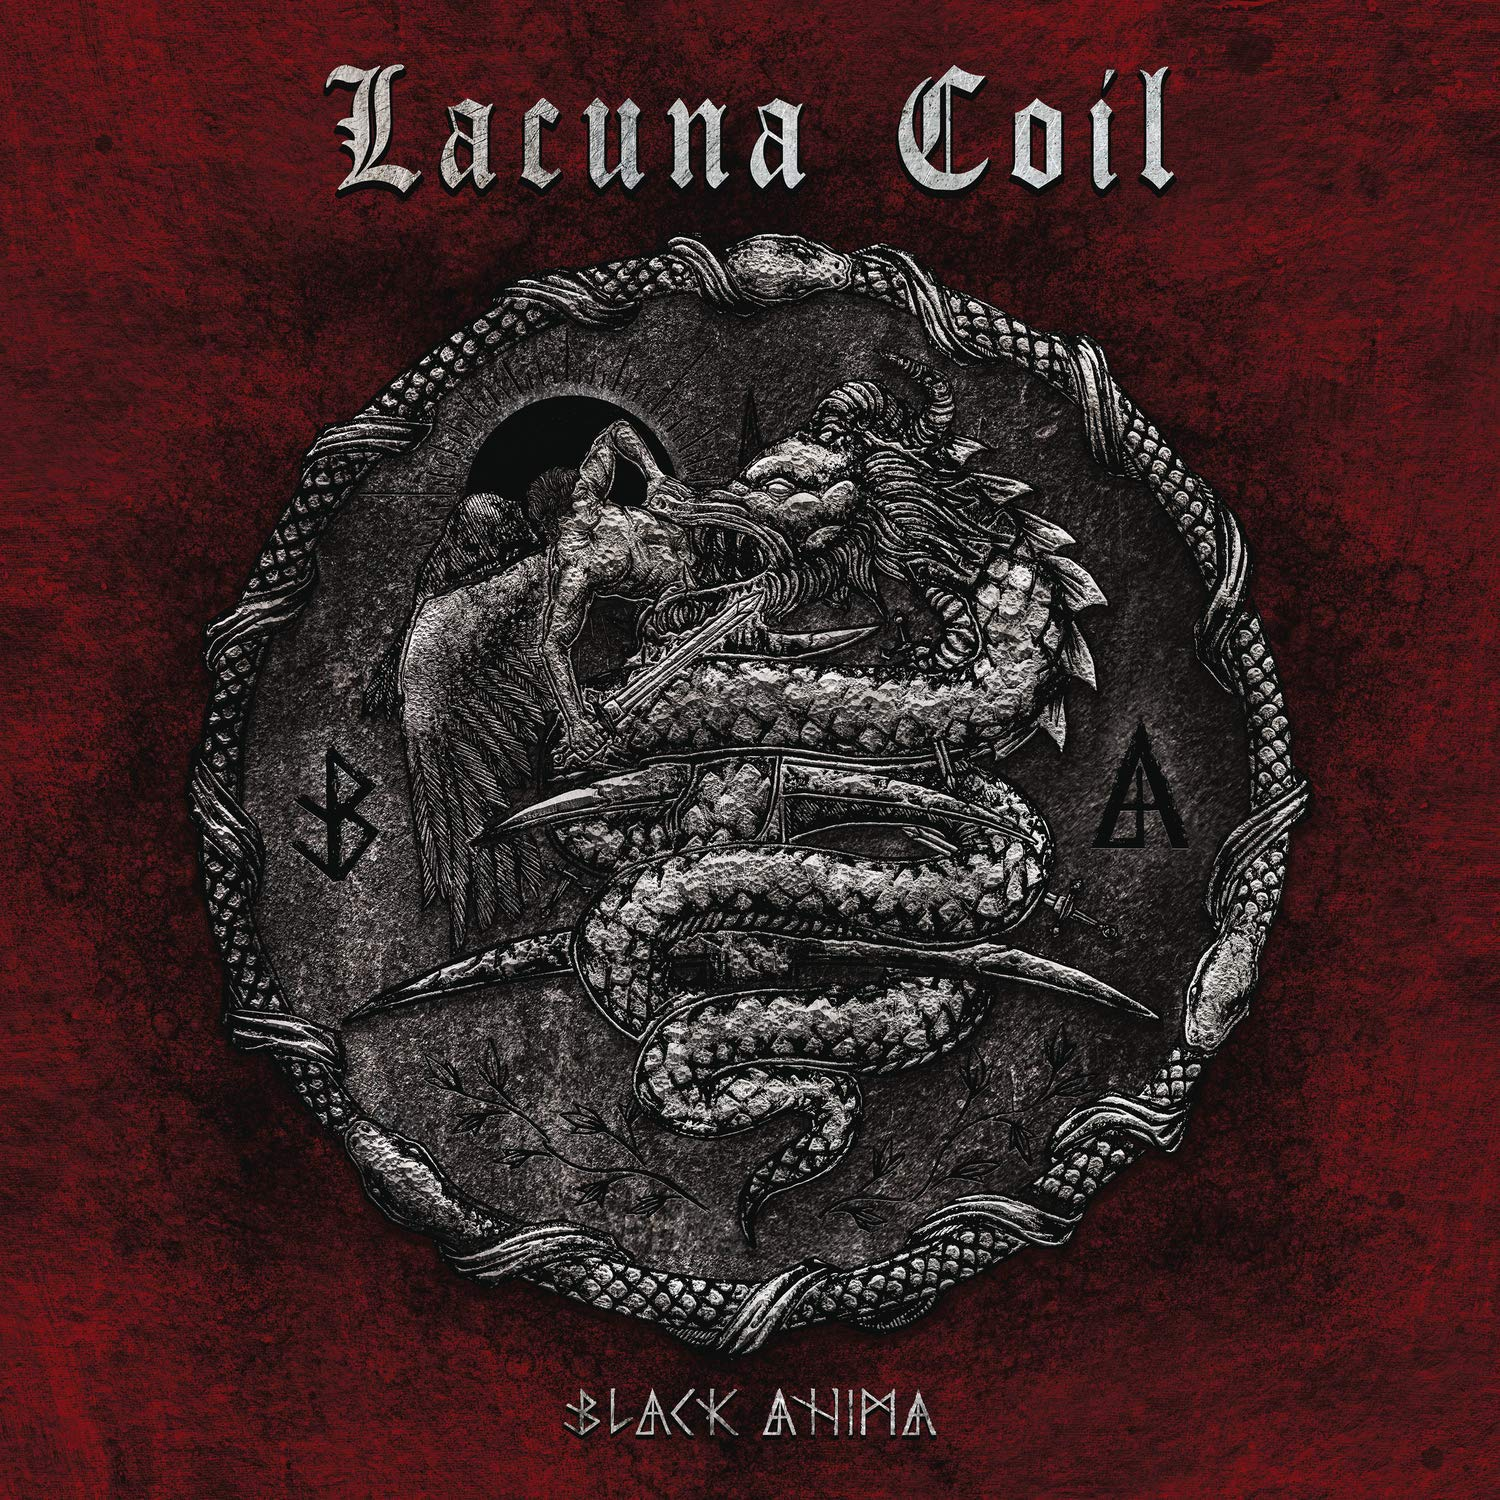 Lacuna Coil - Black Anima [Import Limited Edition LP]